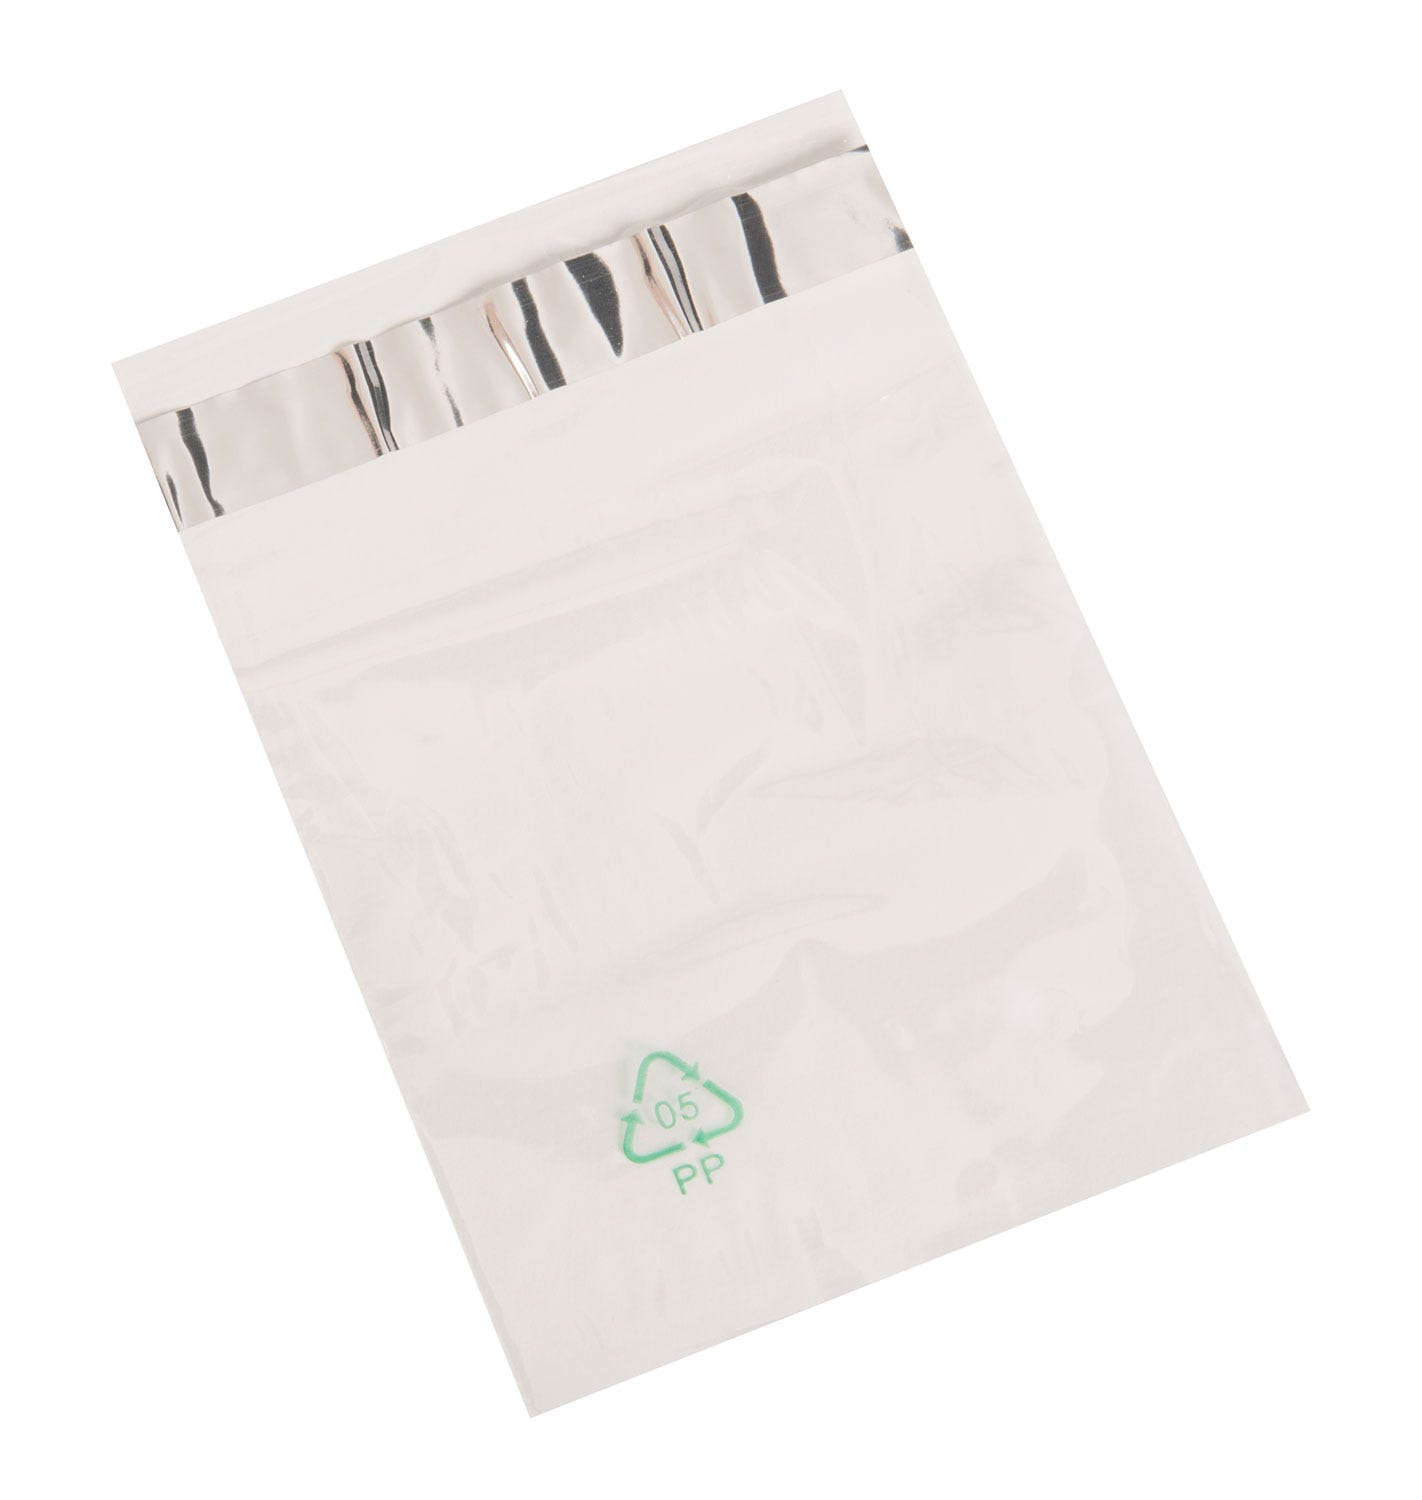 Tenzapac® 270 x 380mm Antistatic Gusseted Self Seal Bags